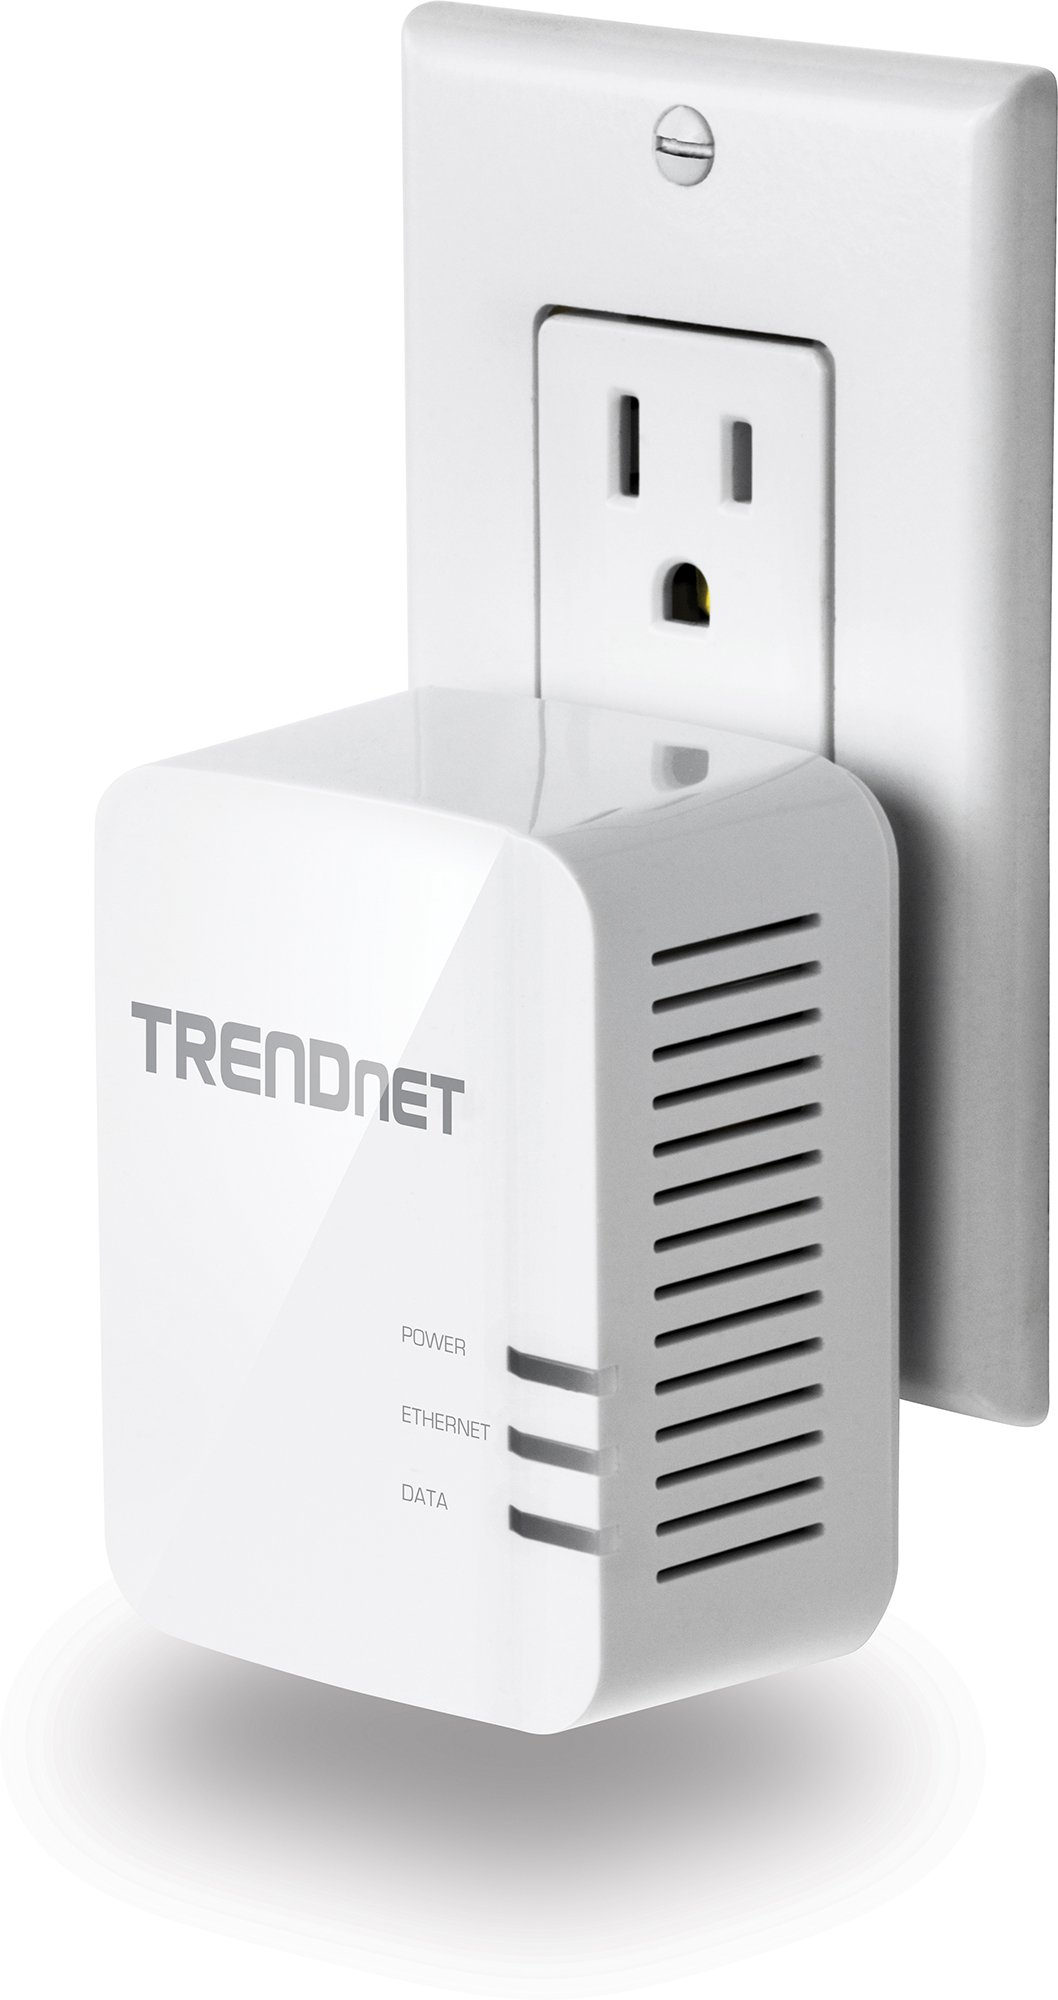 TRENDnet Powerline 1200 AV2 Single Adapter with Gigabit Port, Plug and Play, MIMO, Beamforming, TPL-420E by TRENDnet (Image #3)